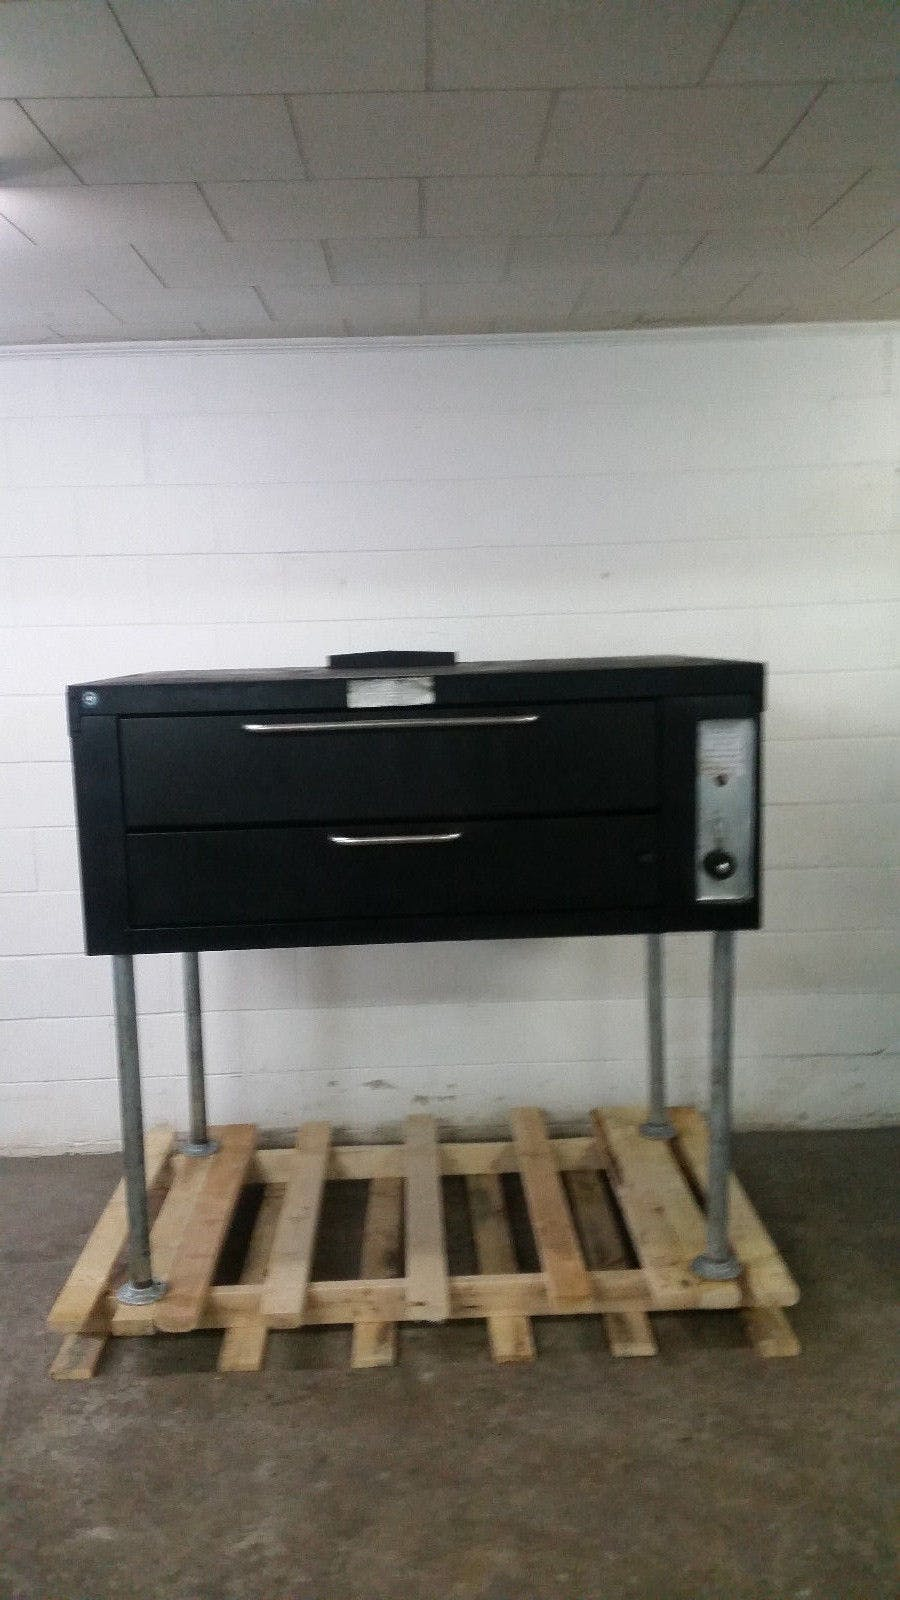 Franklin Chef GP0141A Stone Deck Pizza Oven Tested Natural Gas 65,000 BTU - sold by Jak's Restaurant Supply